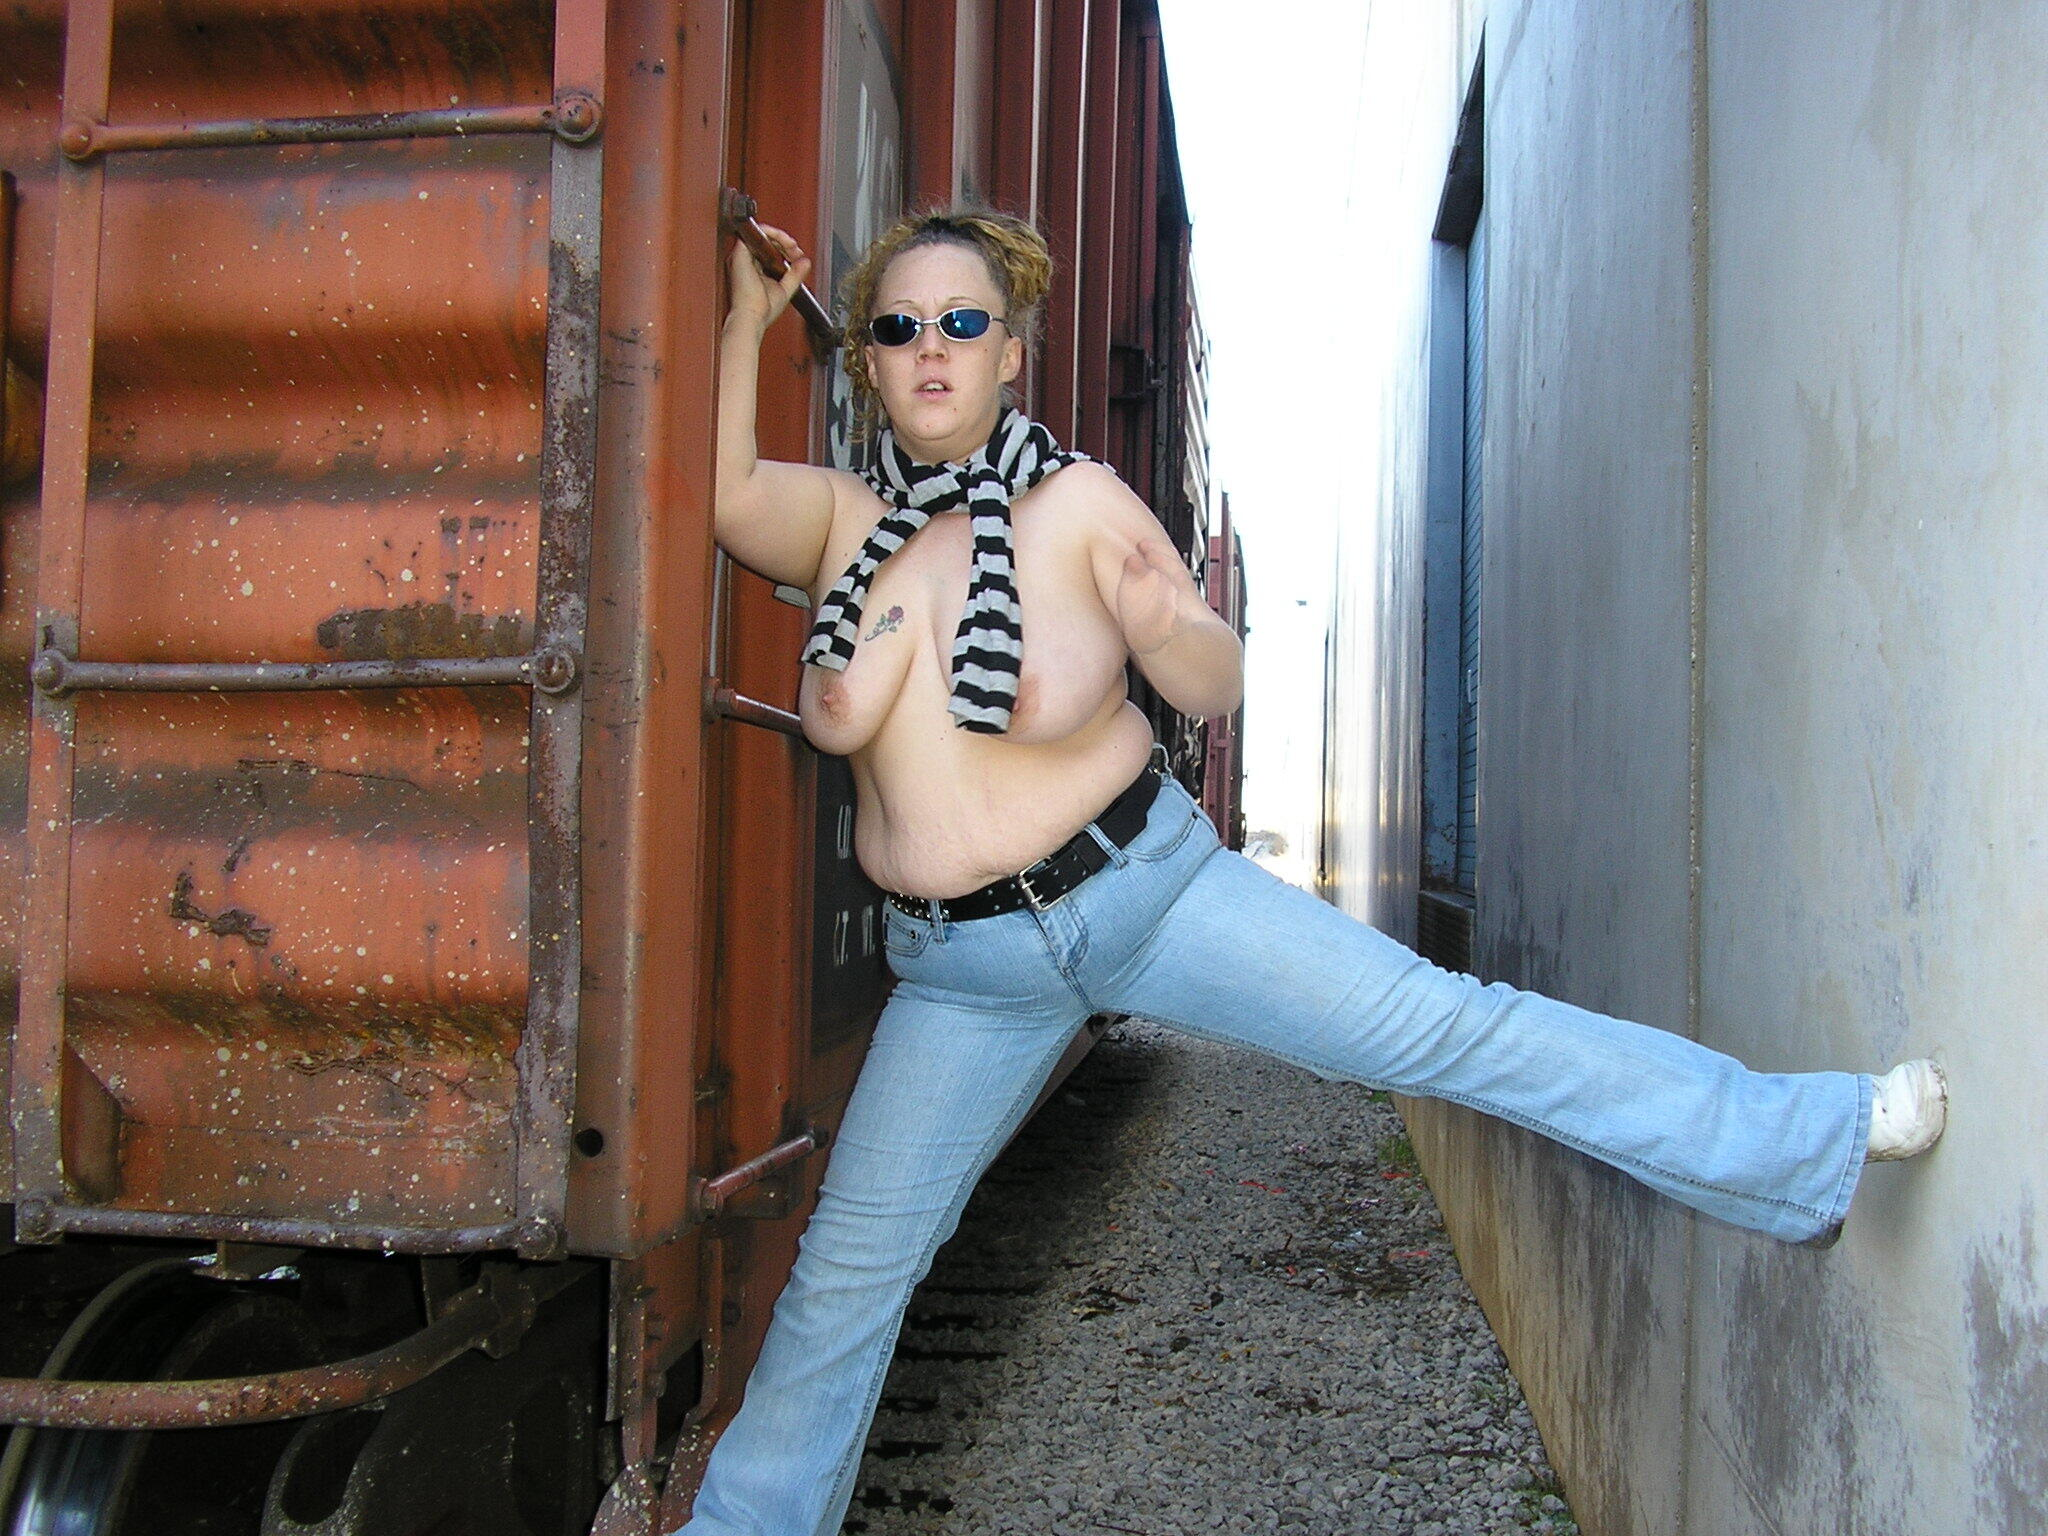 Rosy on the rails real nudity public flashing milf pics howife boobs flash